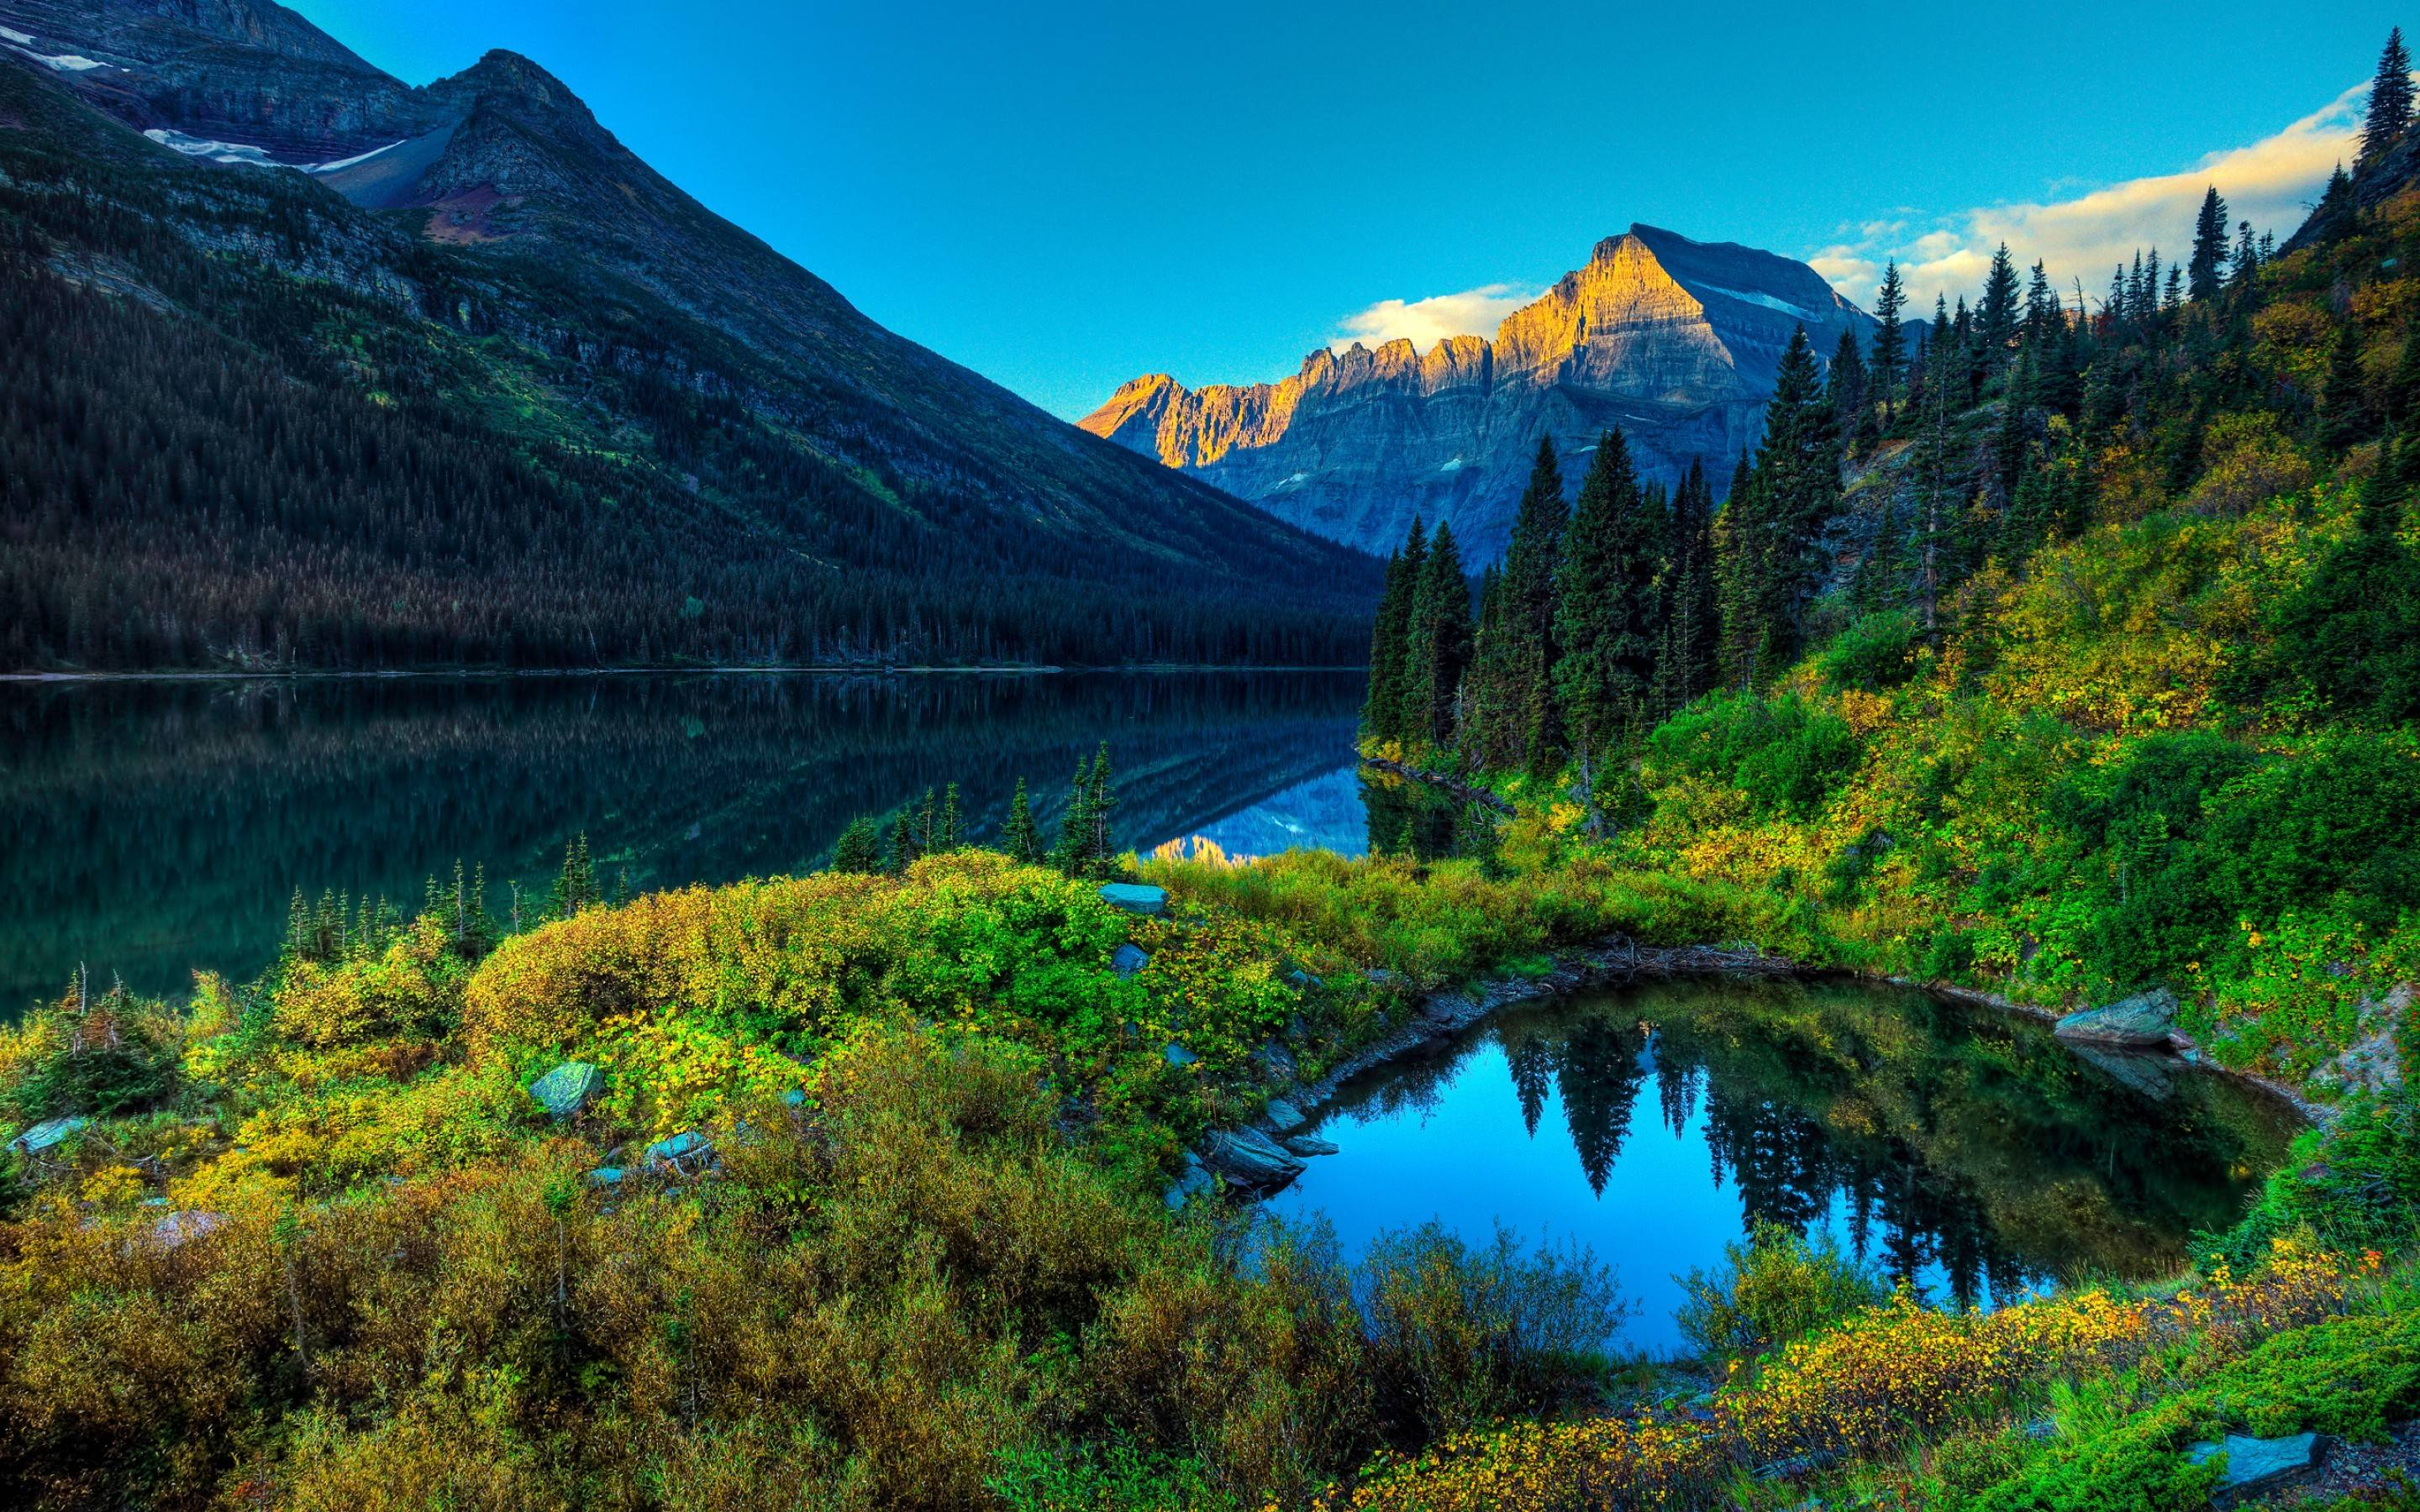 Scenic Images Wallpapers